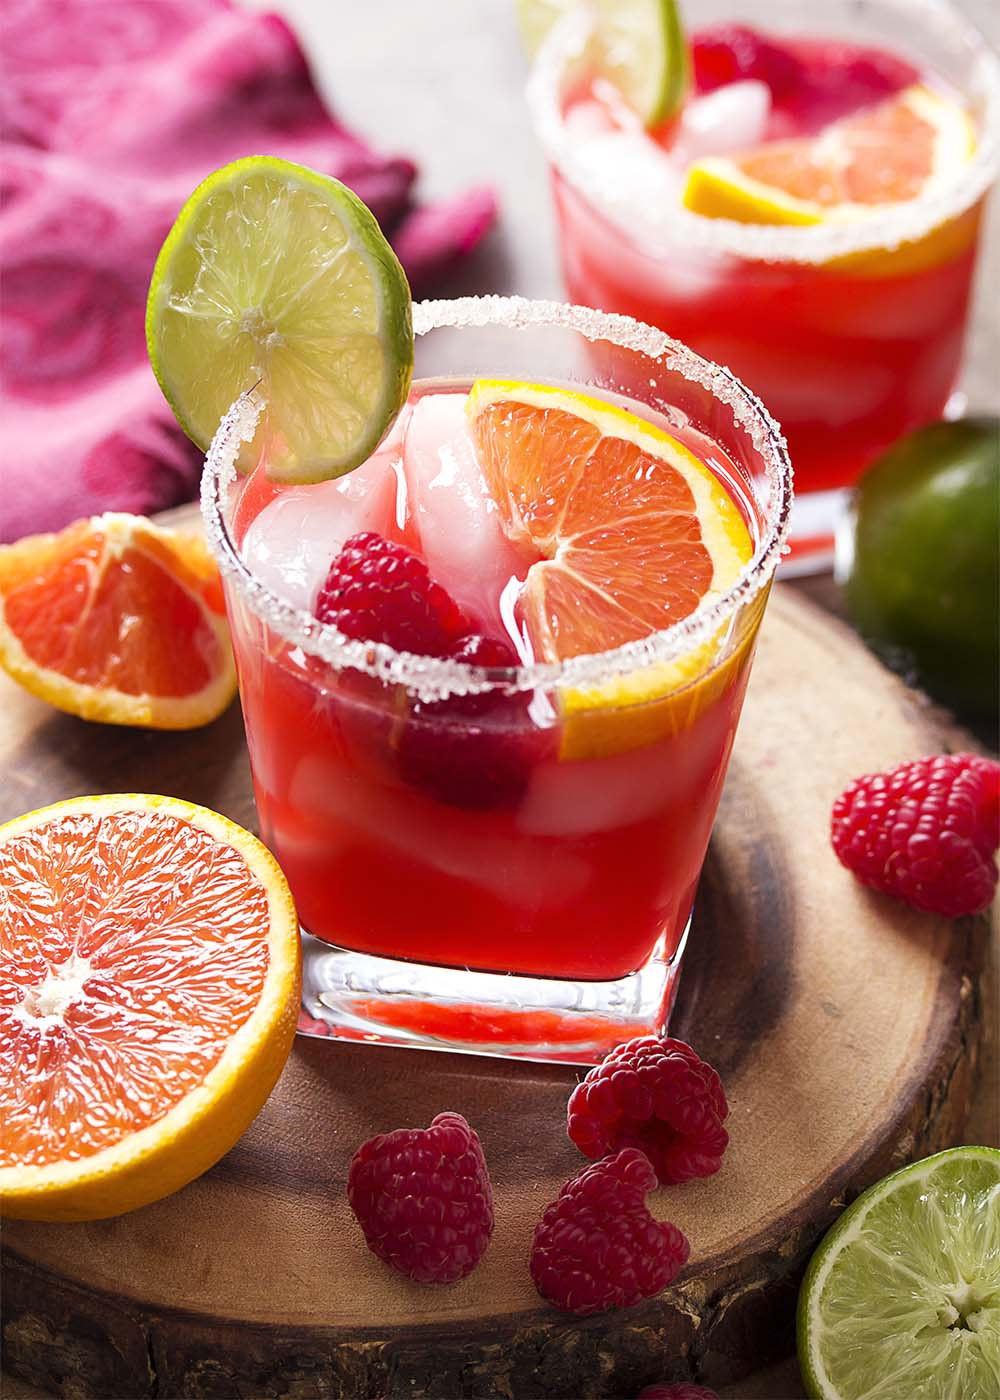 Two raspberry orange margaritas each garnished with fruit and in sugar rimmed glasses.